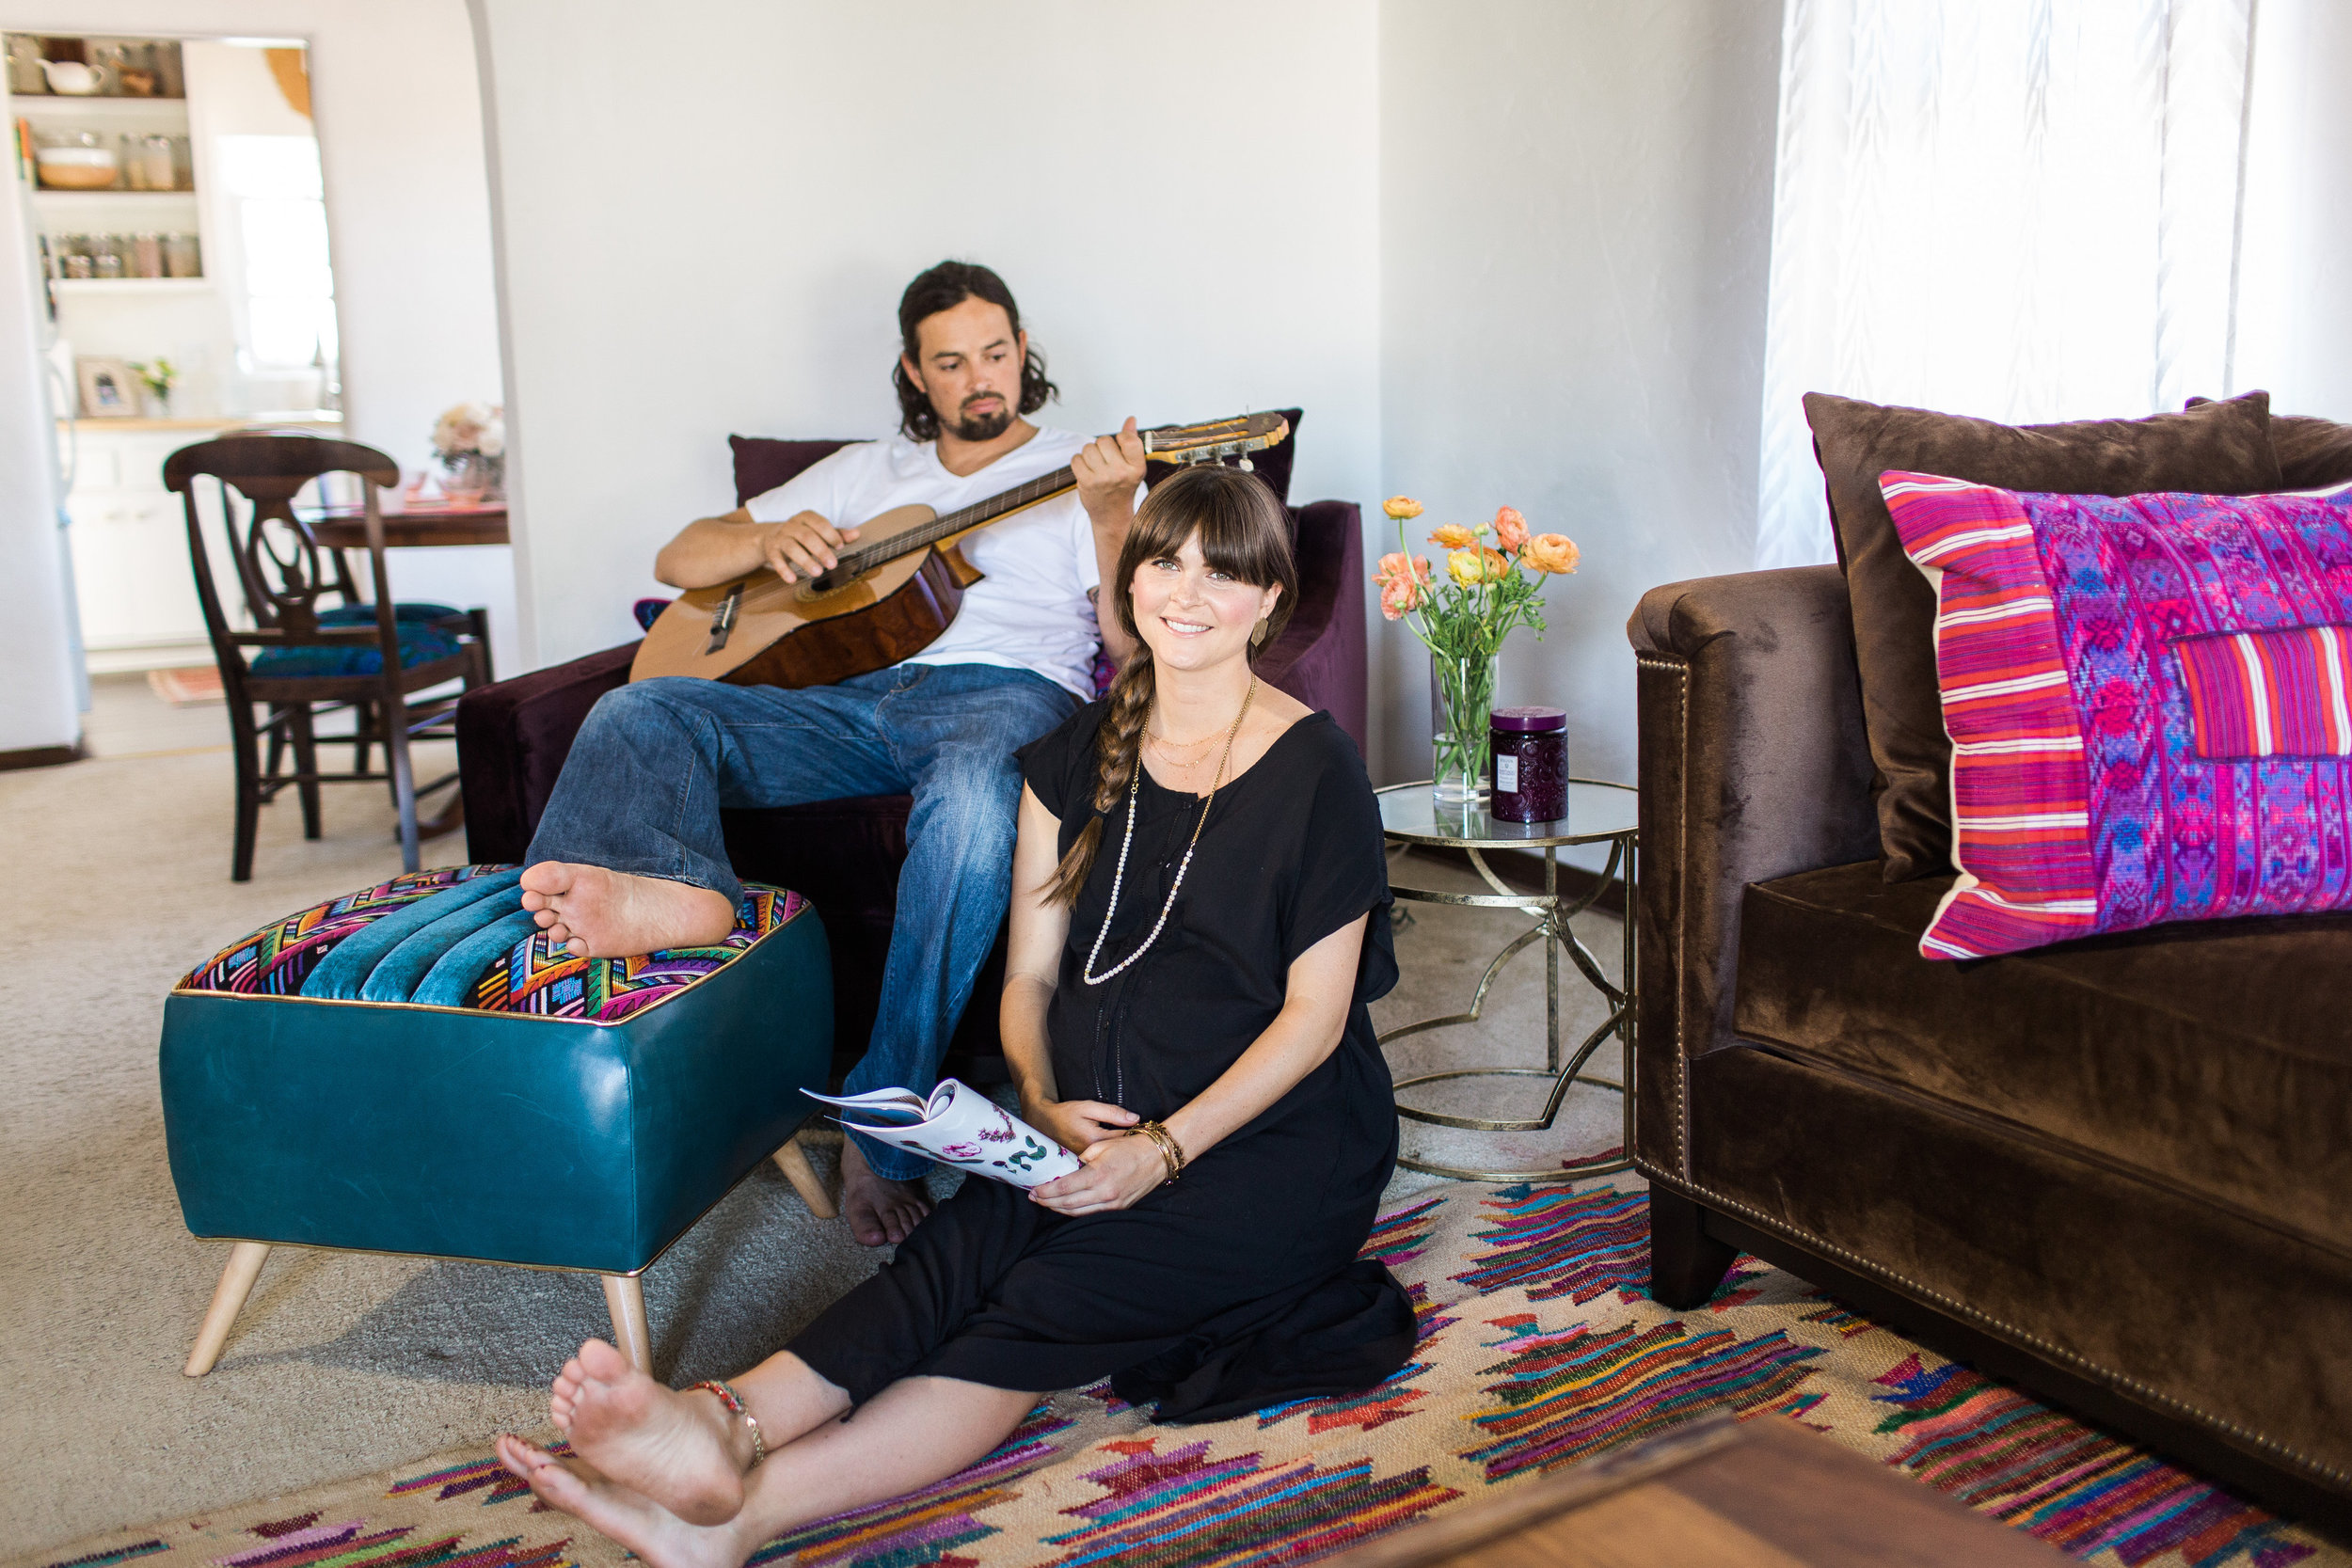 Lindsey and Luke in Living room